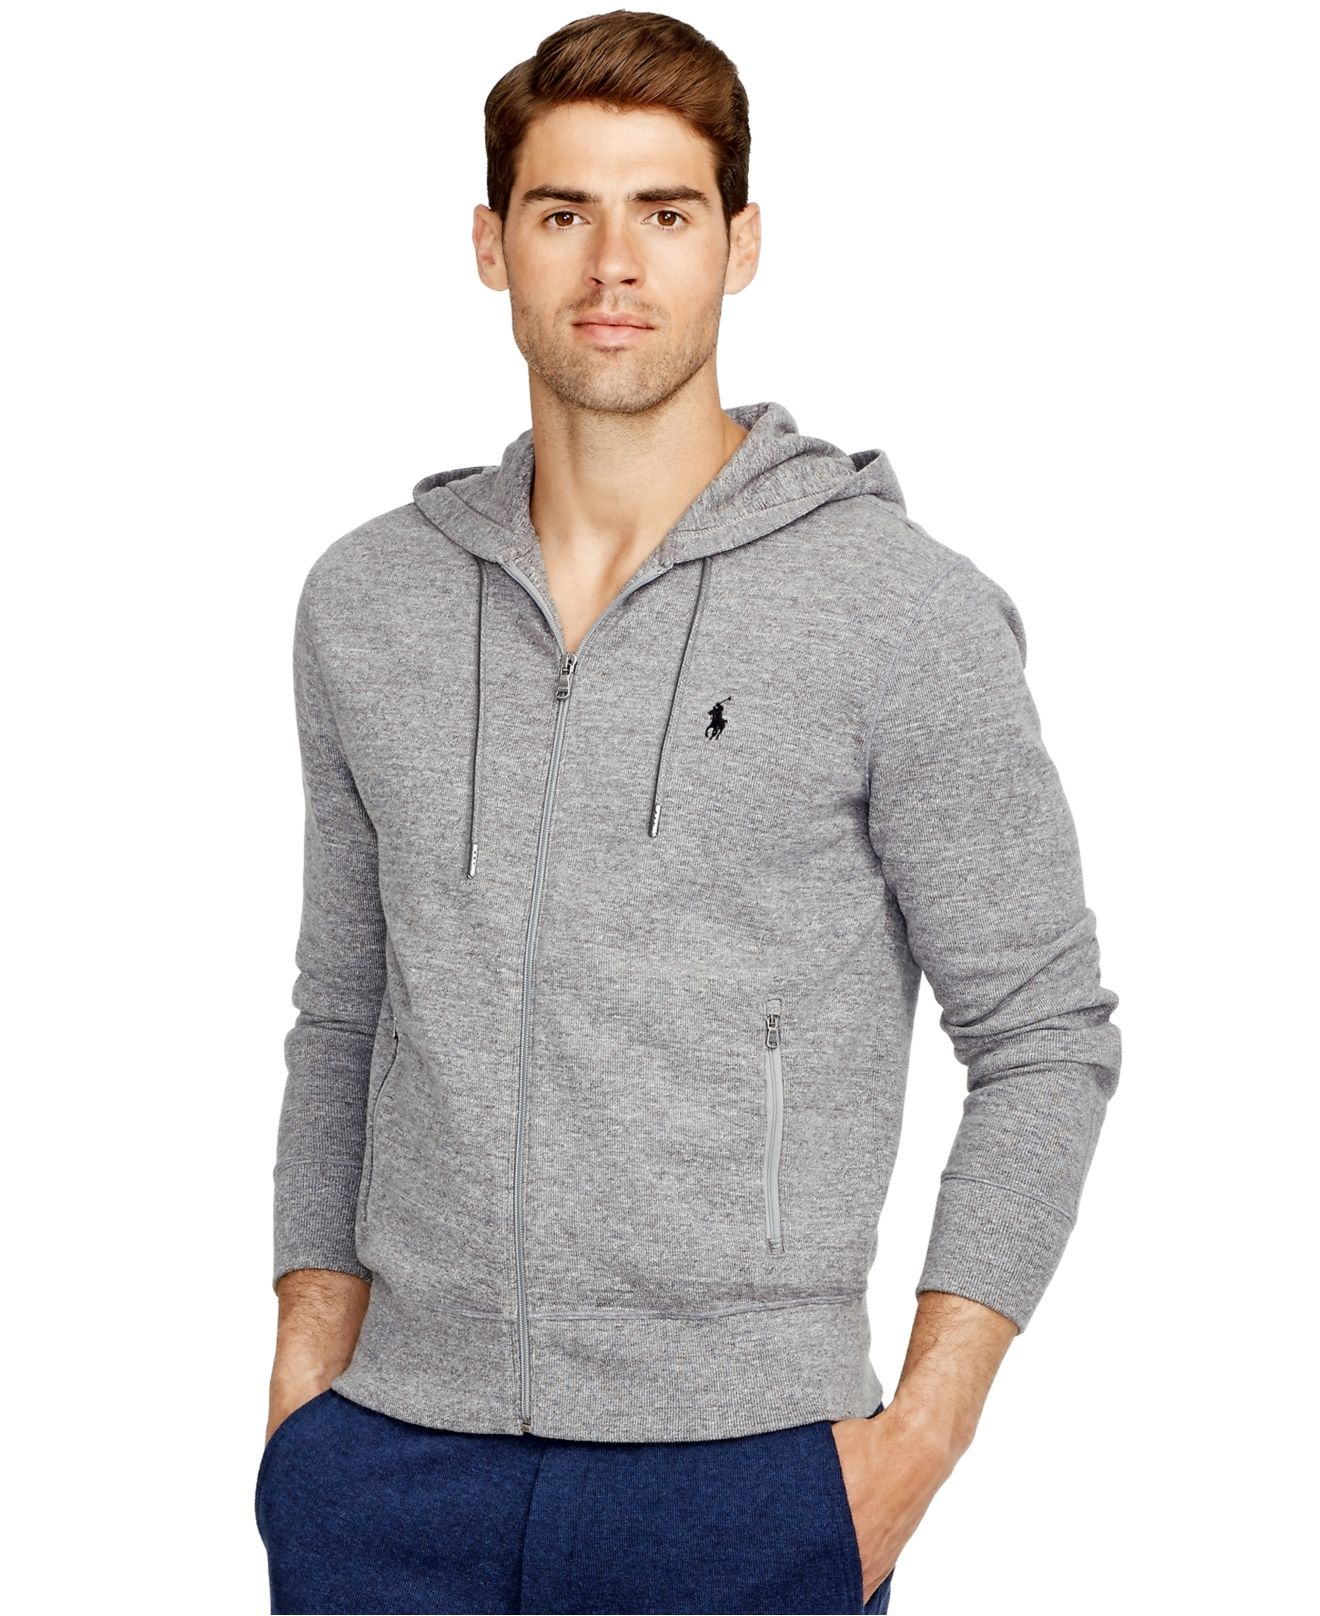 78486232277c2 ... canada lyst polo ralph lauren french rib full zip hoodie in gray for  men 8aed4 b77ba